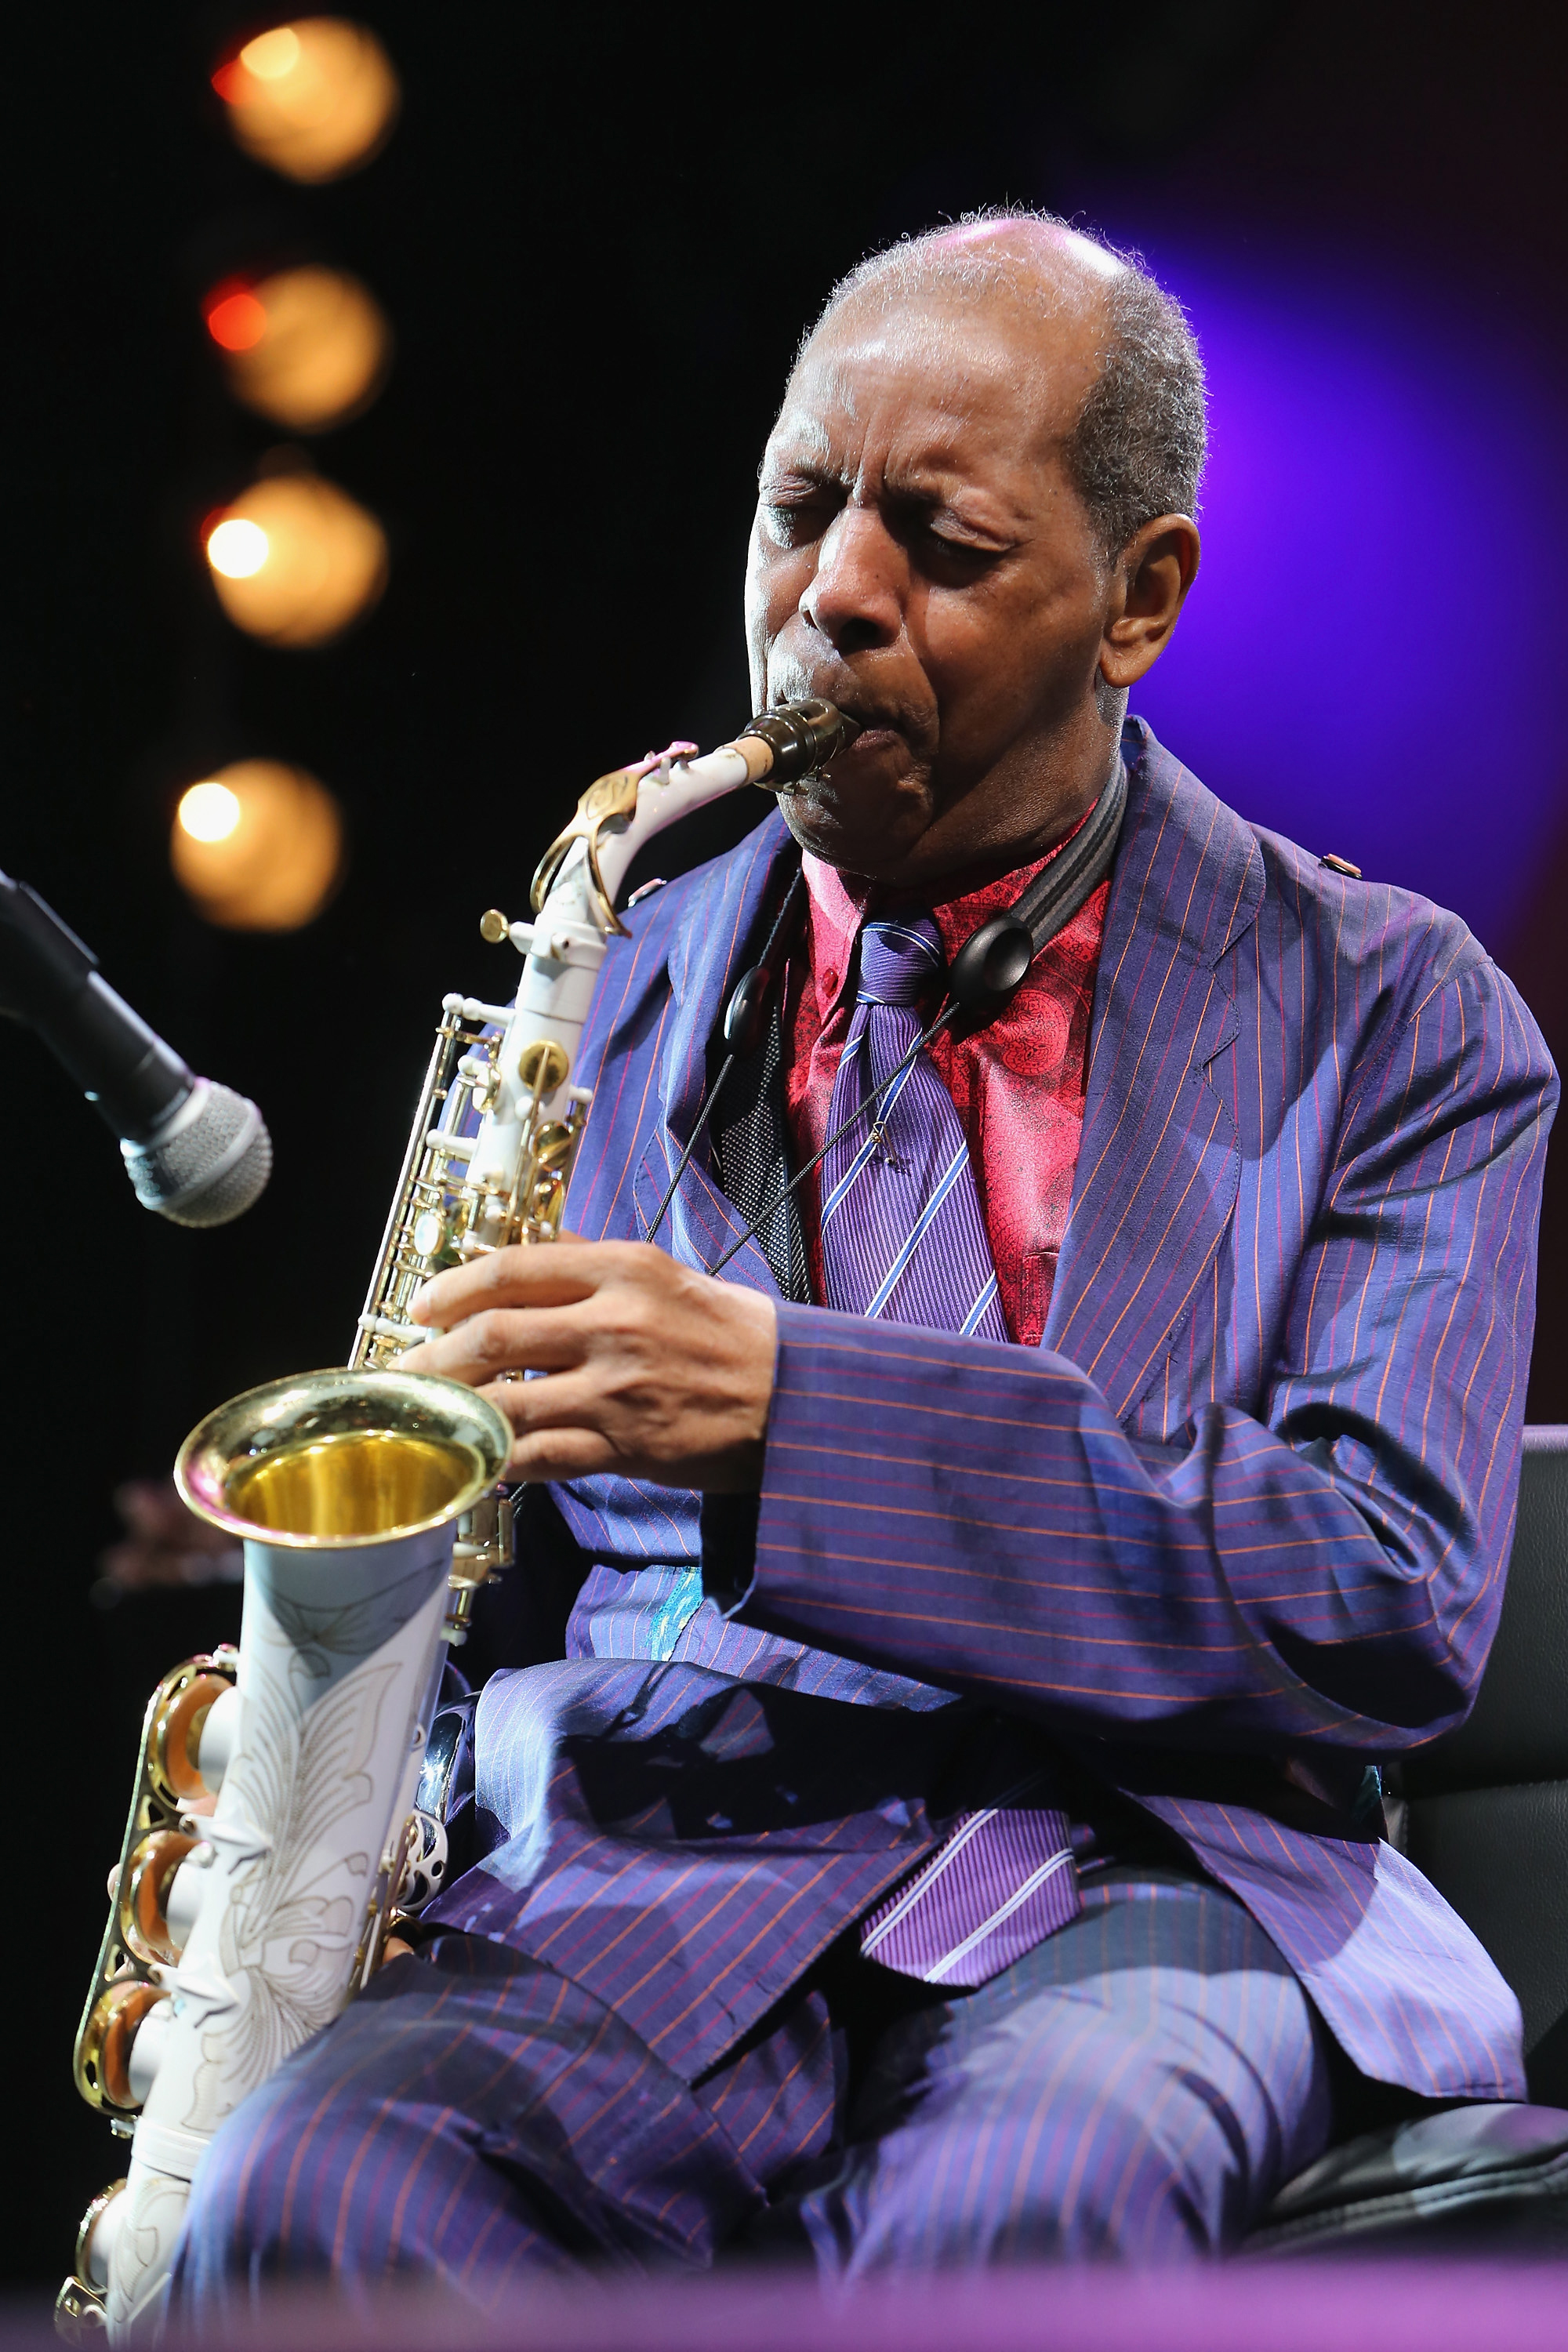 Ornette Coleman performs during  Celebrate Ornette:  The Music of Ornette Coleman , part of the 2014 Celebrate Brooklyn! season at the Prospect Park Bandshell on June 12, 2014 in Brooklyn, N.Y.